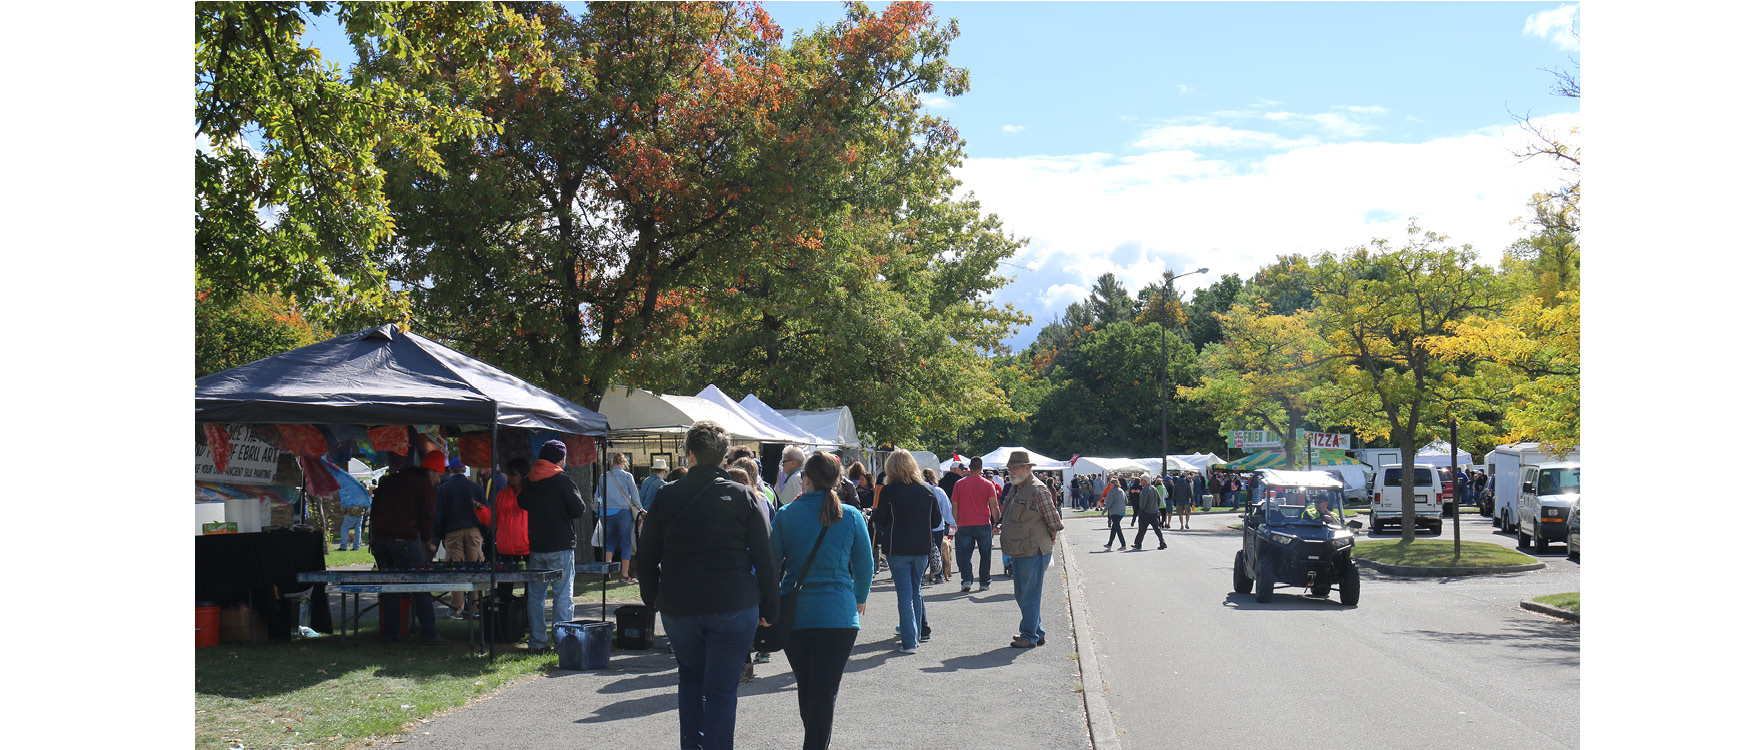 ACWC's Letchworth Arts and Crafts Show Now Accepting Artist Applications